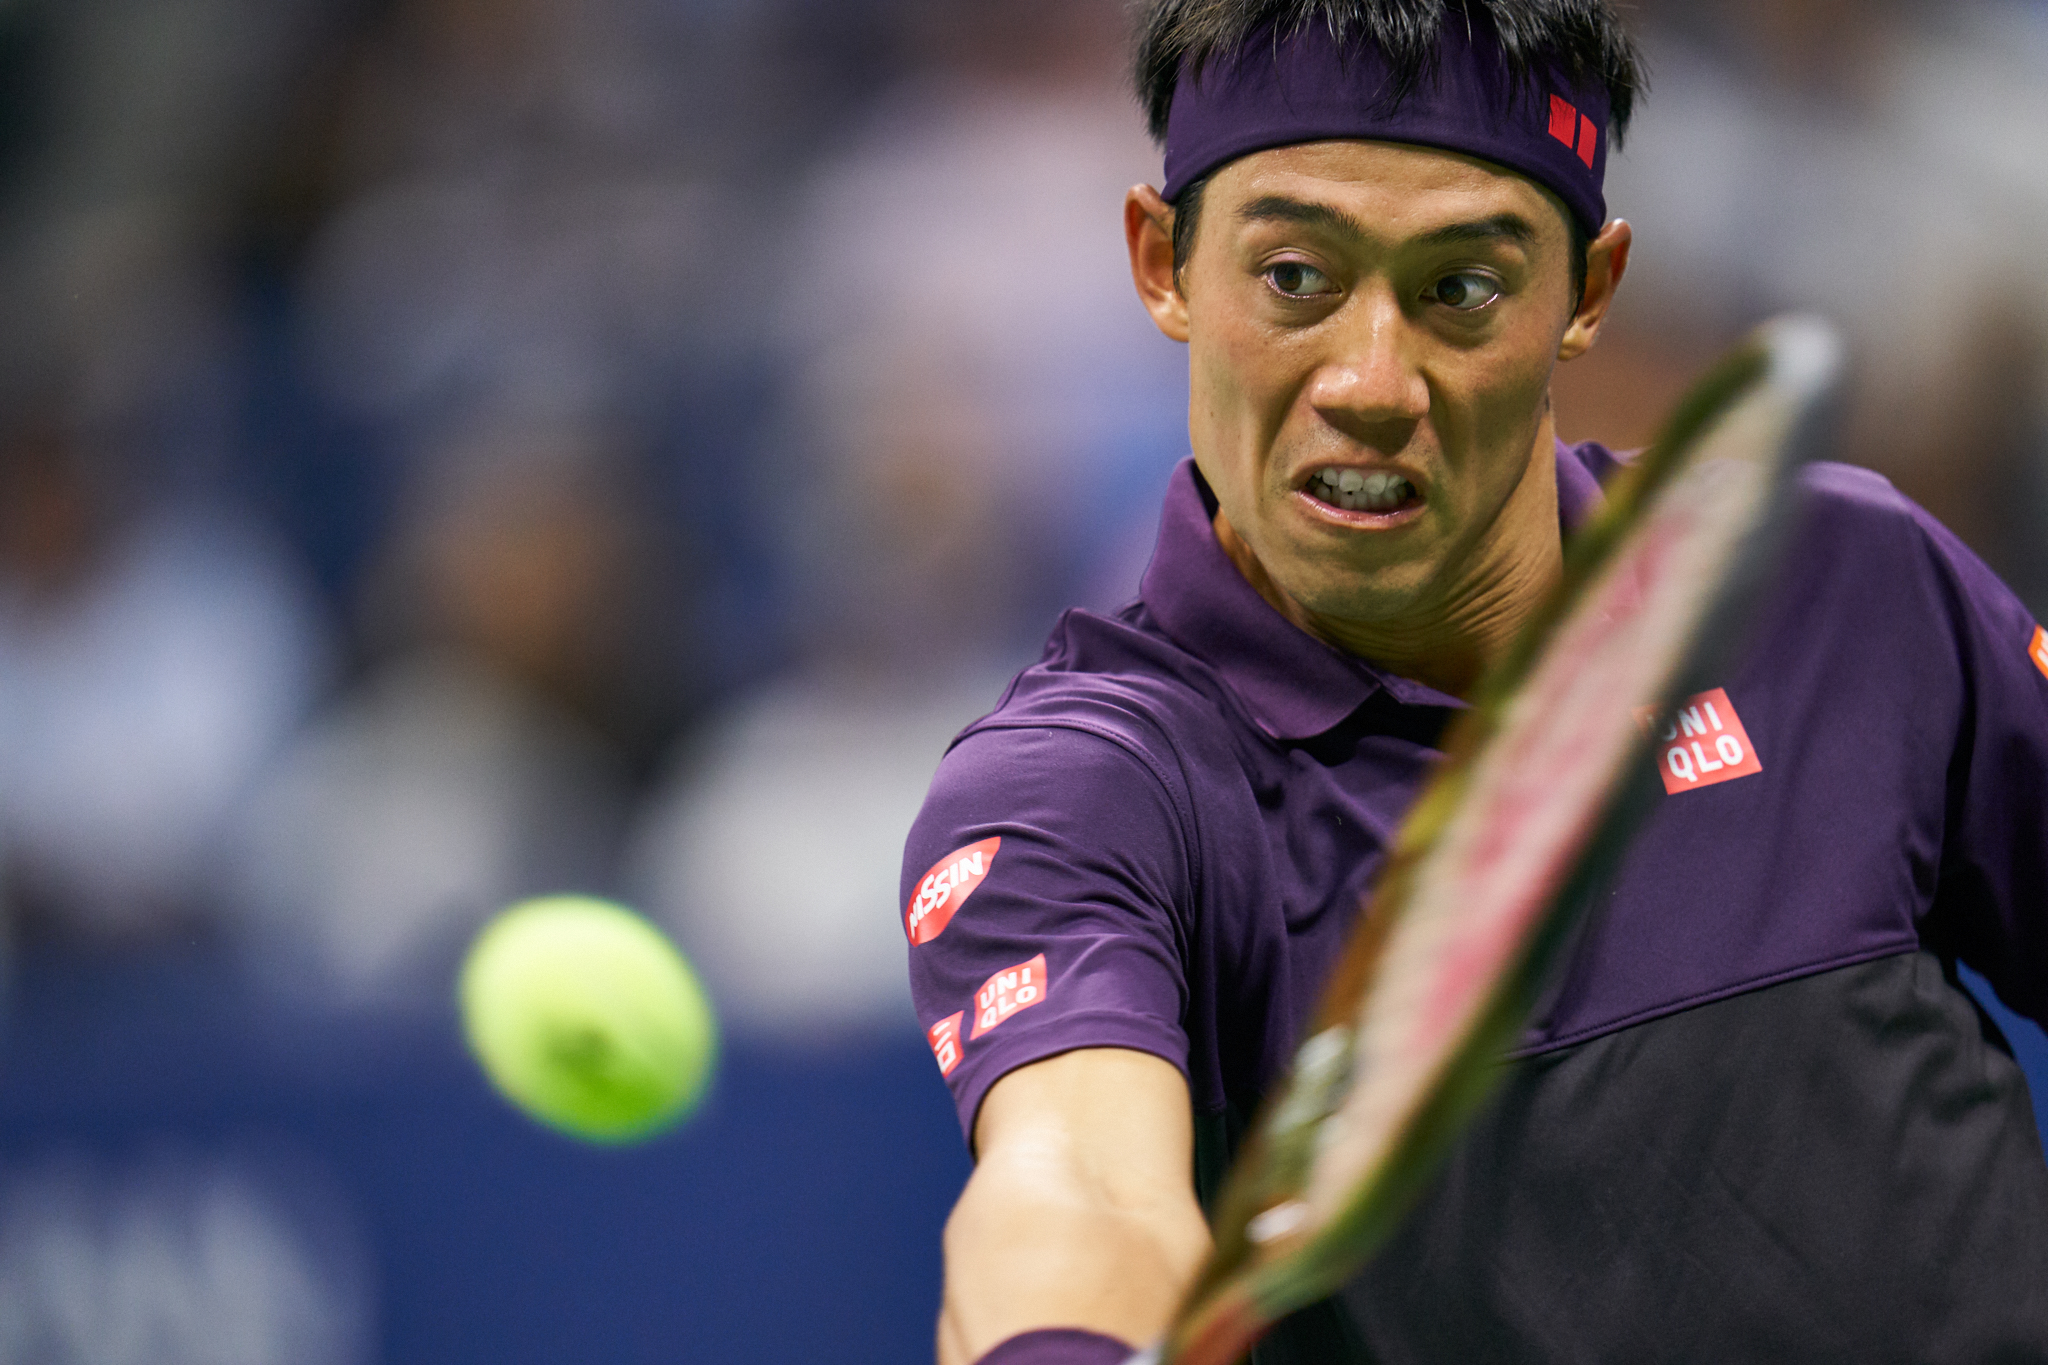 Kei Nishikori, Arthur Ashe Stadium, Men's Singles Semifinal  Sony A9, Sony 400mm f2.8 GM-OSS  (I should probably note that this is an uncropped image)